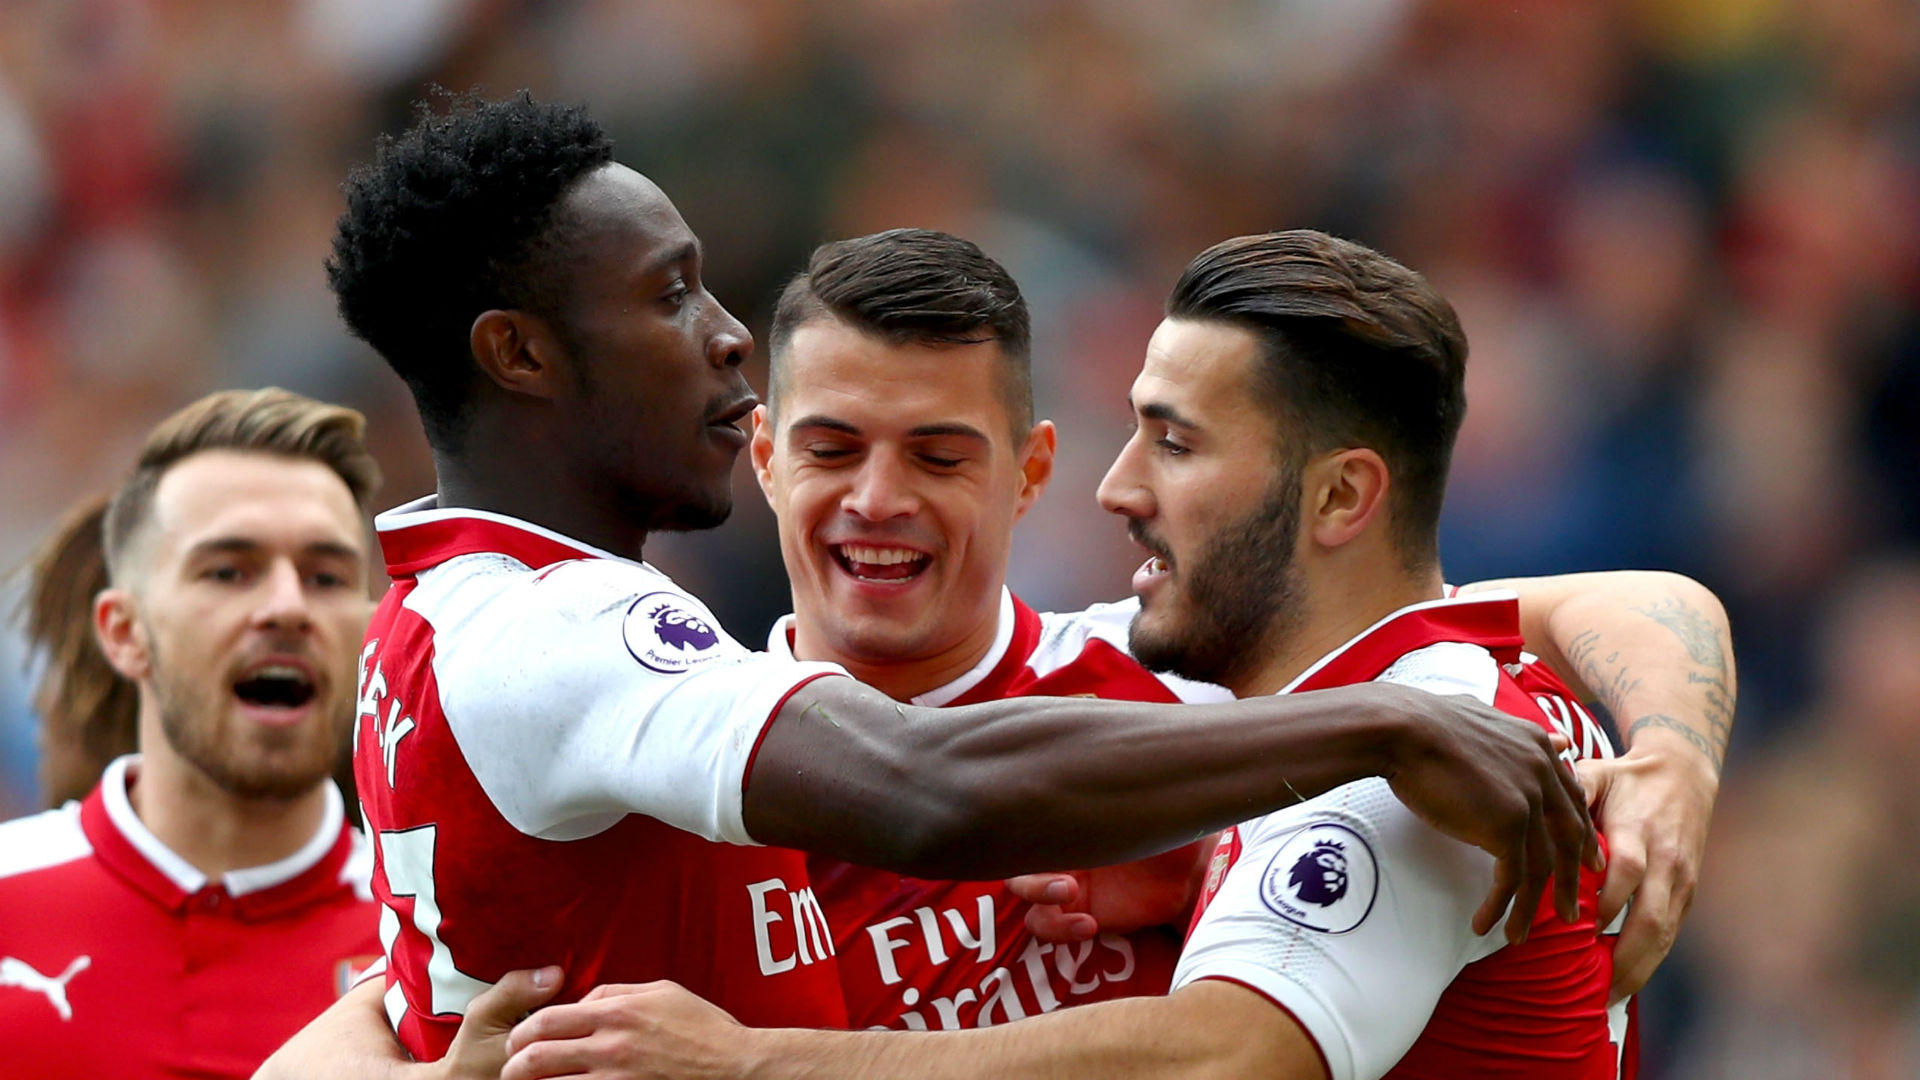 Arsenal 3-0 Bournemouth: Five things we learned